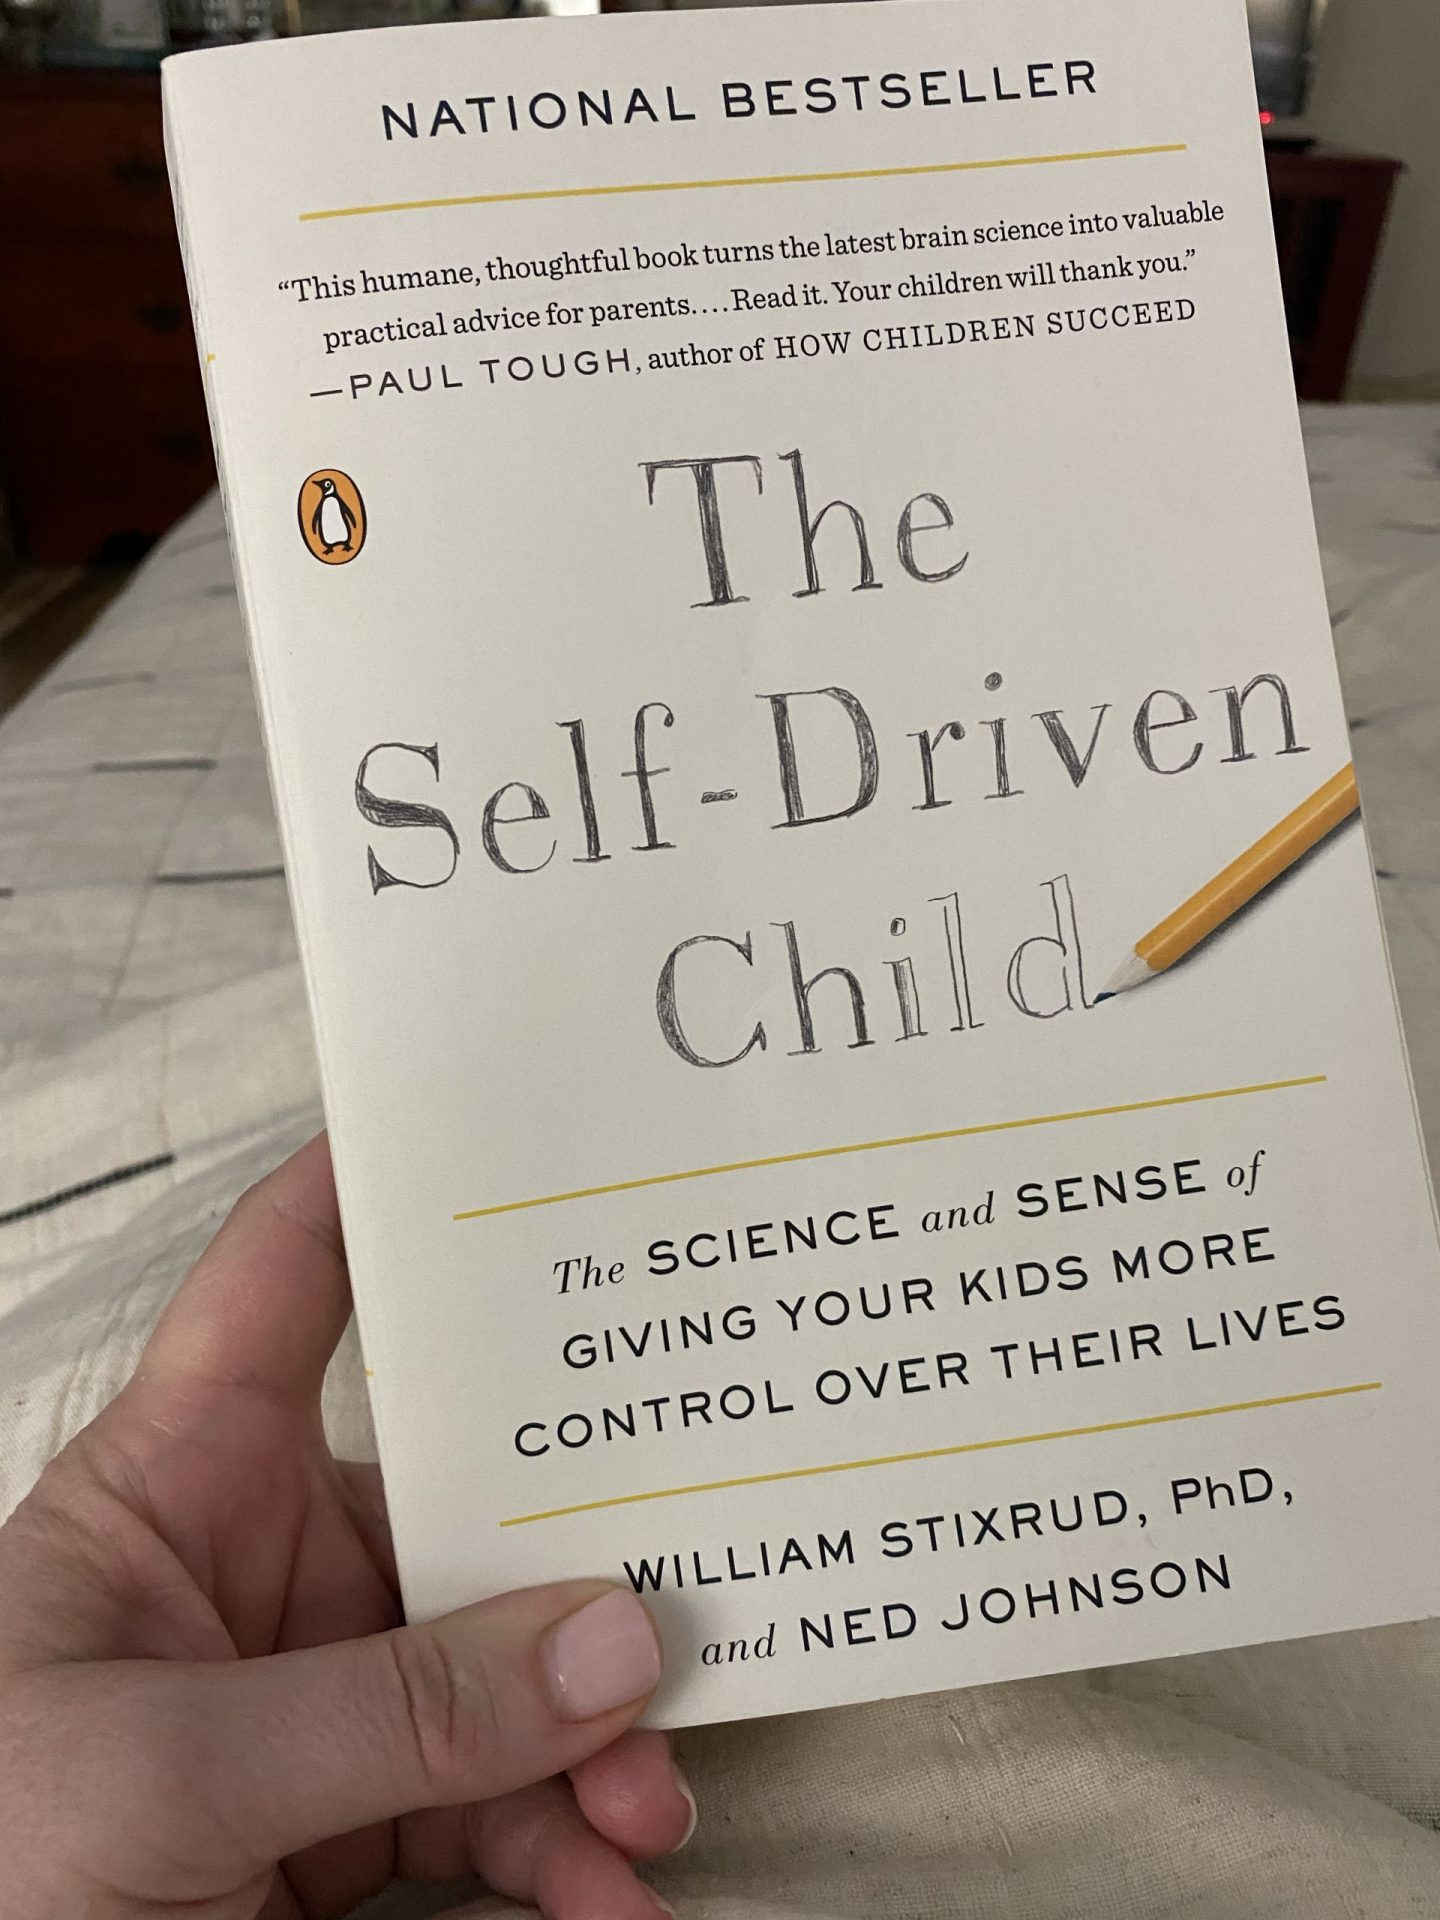 NC blogger Rebecca Lately shares her review of the latest book she's read, which is The Self-Driven Child by Stixrud and Johnson.